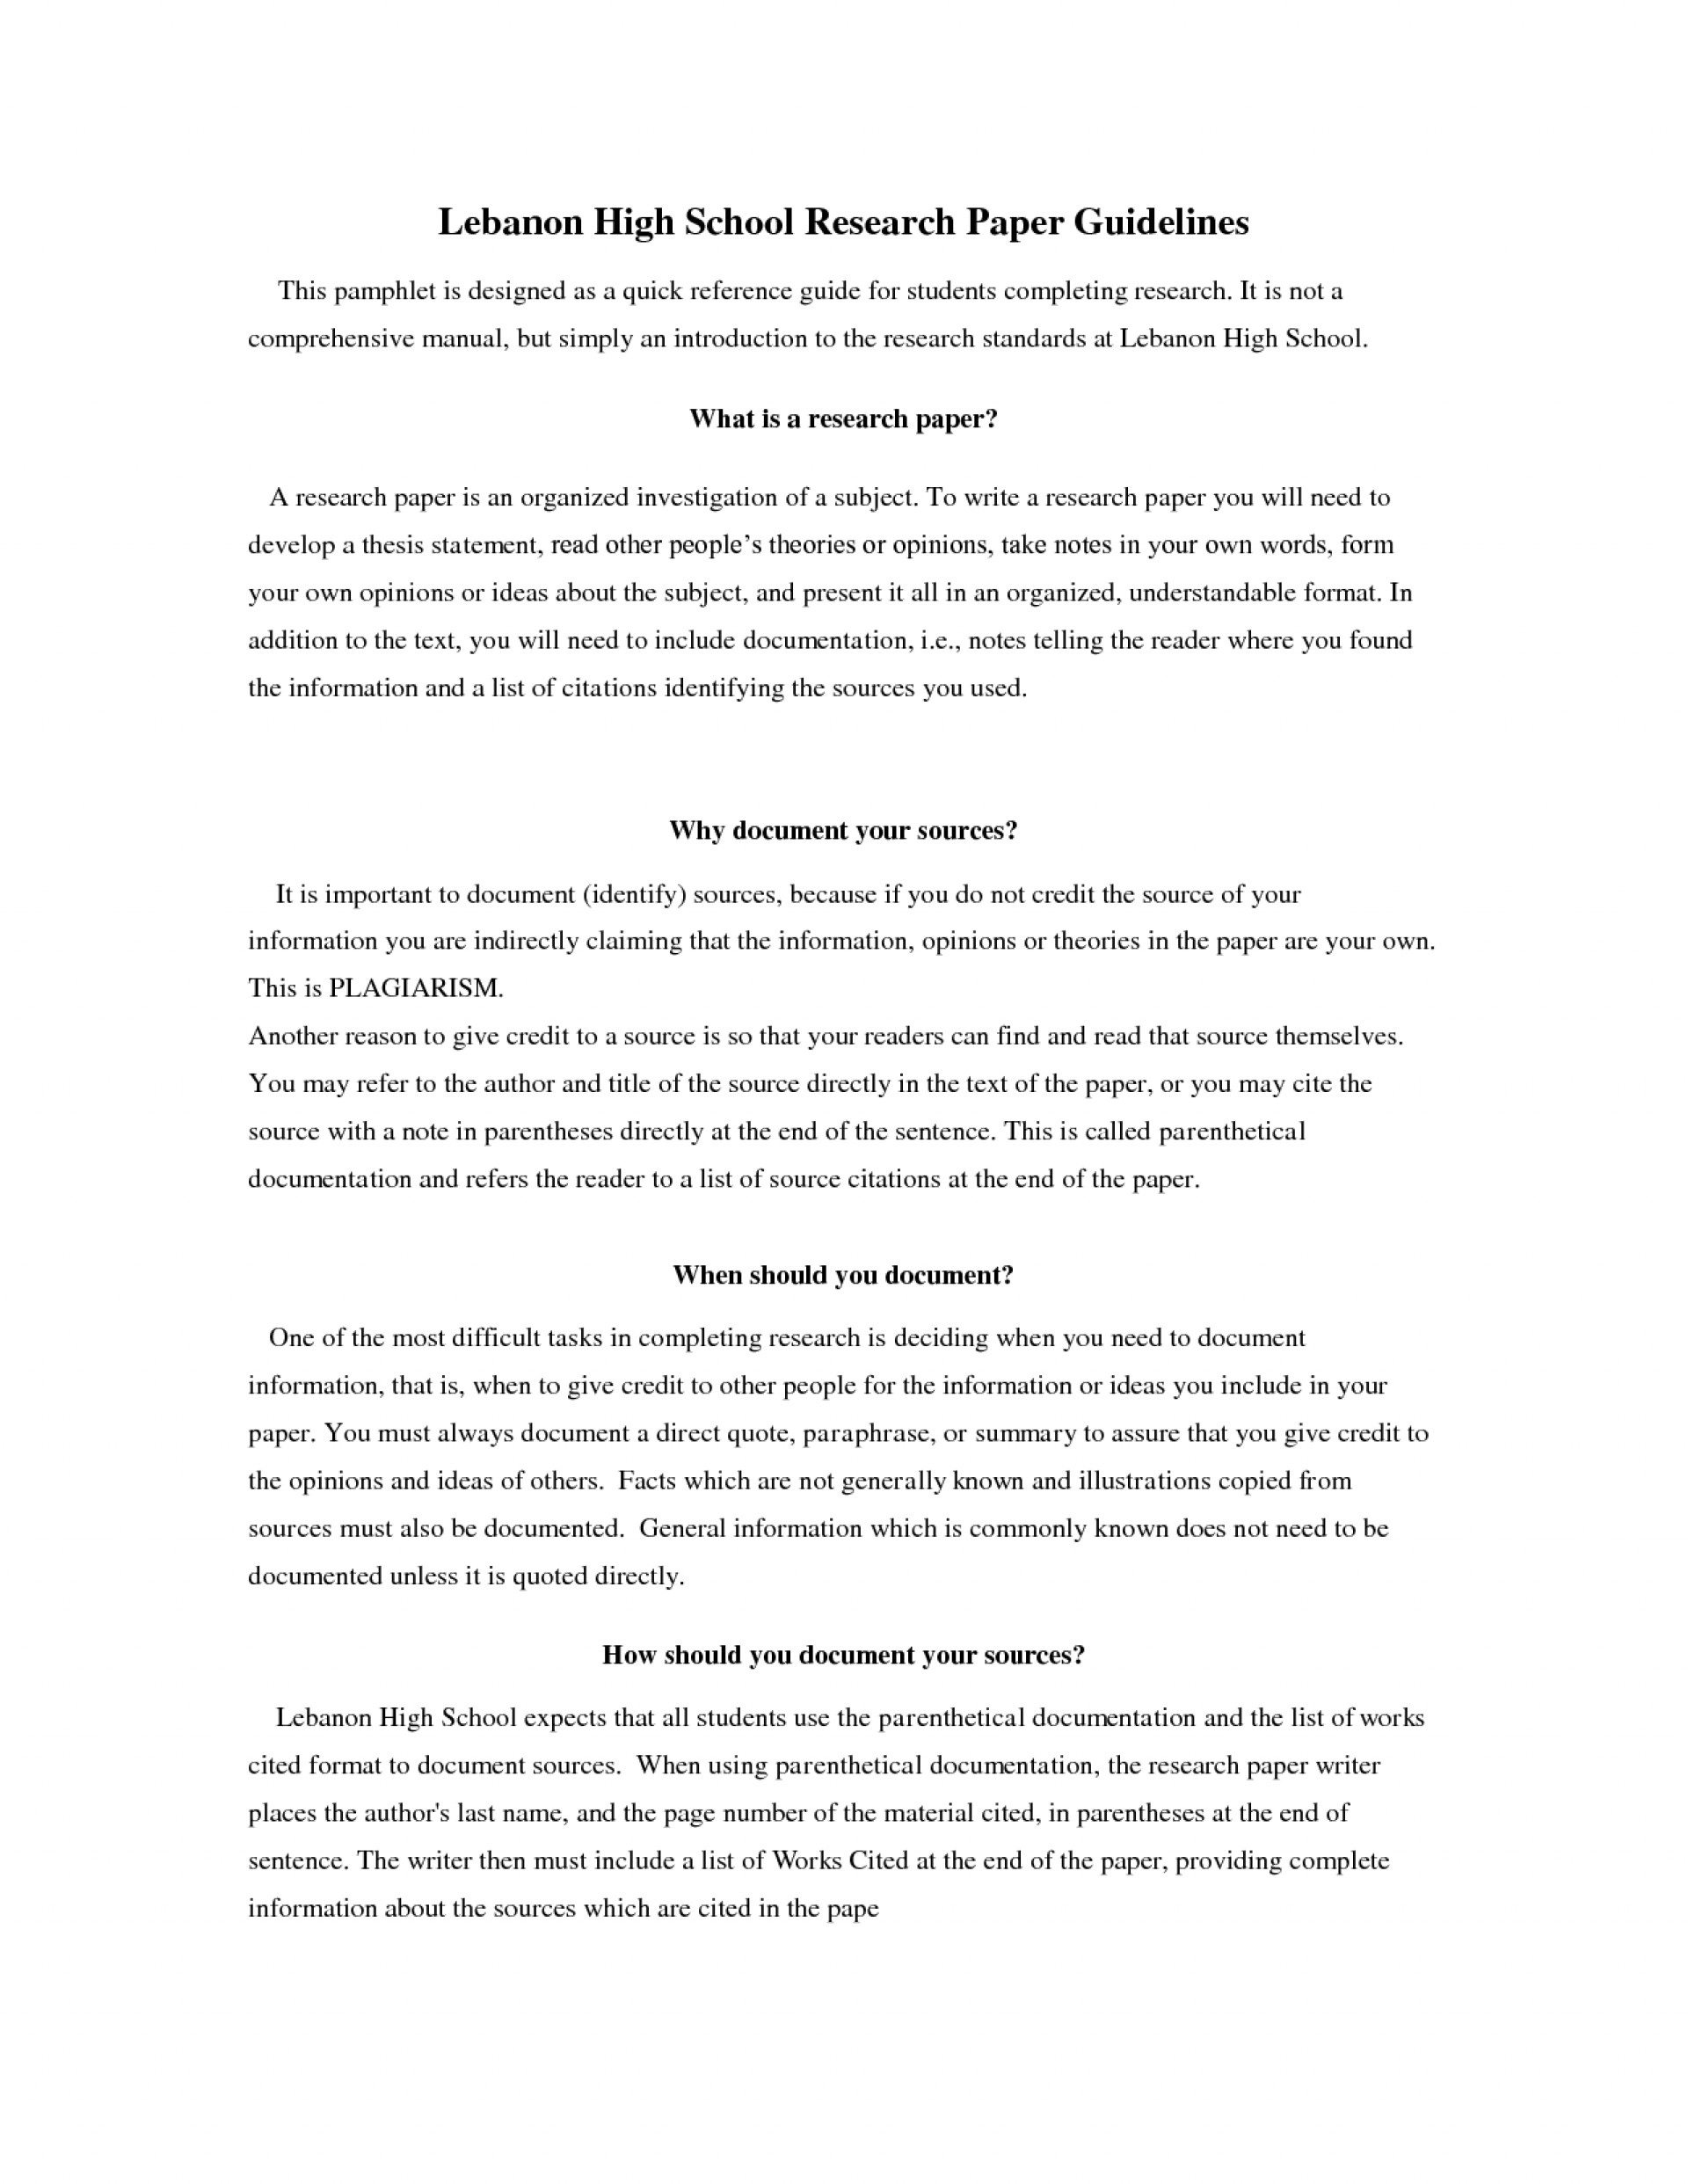 010 Research Paper Good Shocking Topics For Us History Argumentative College English Best Reddit 1920